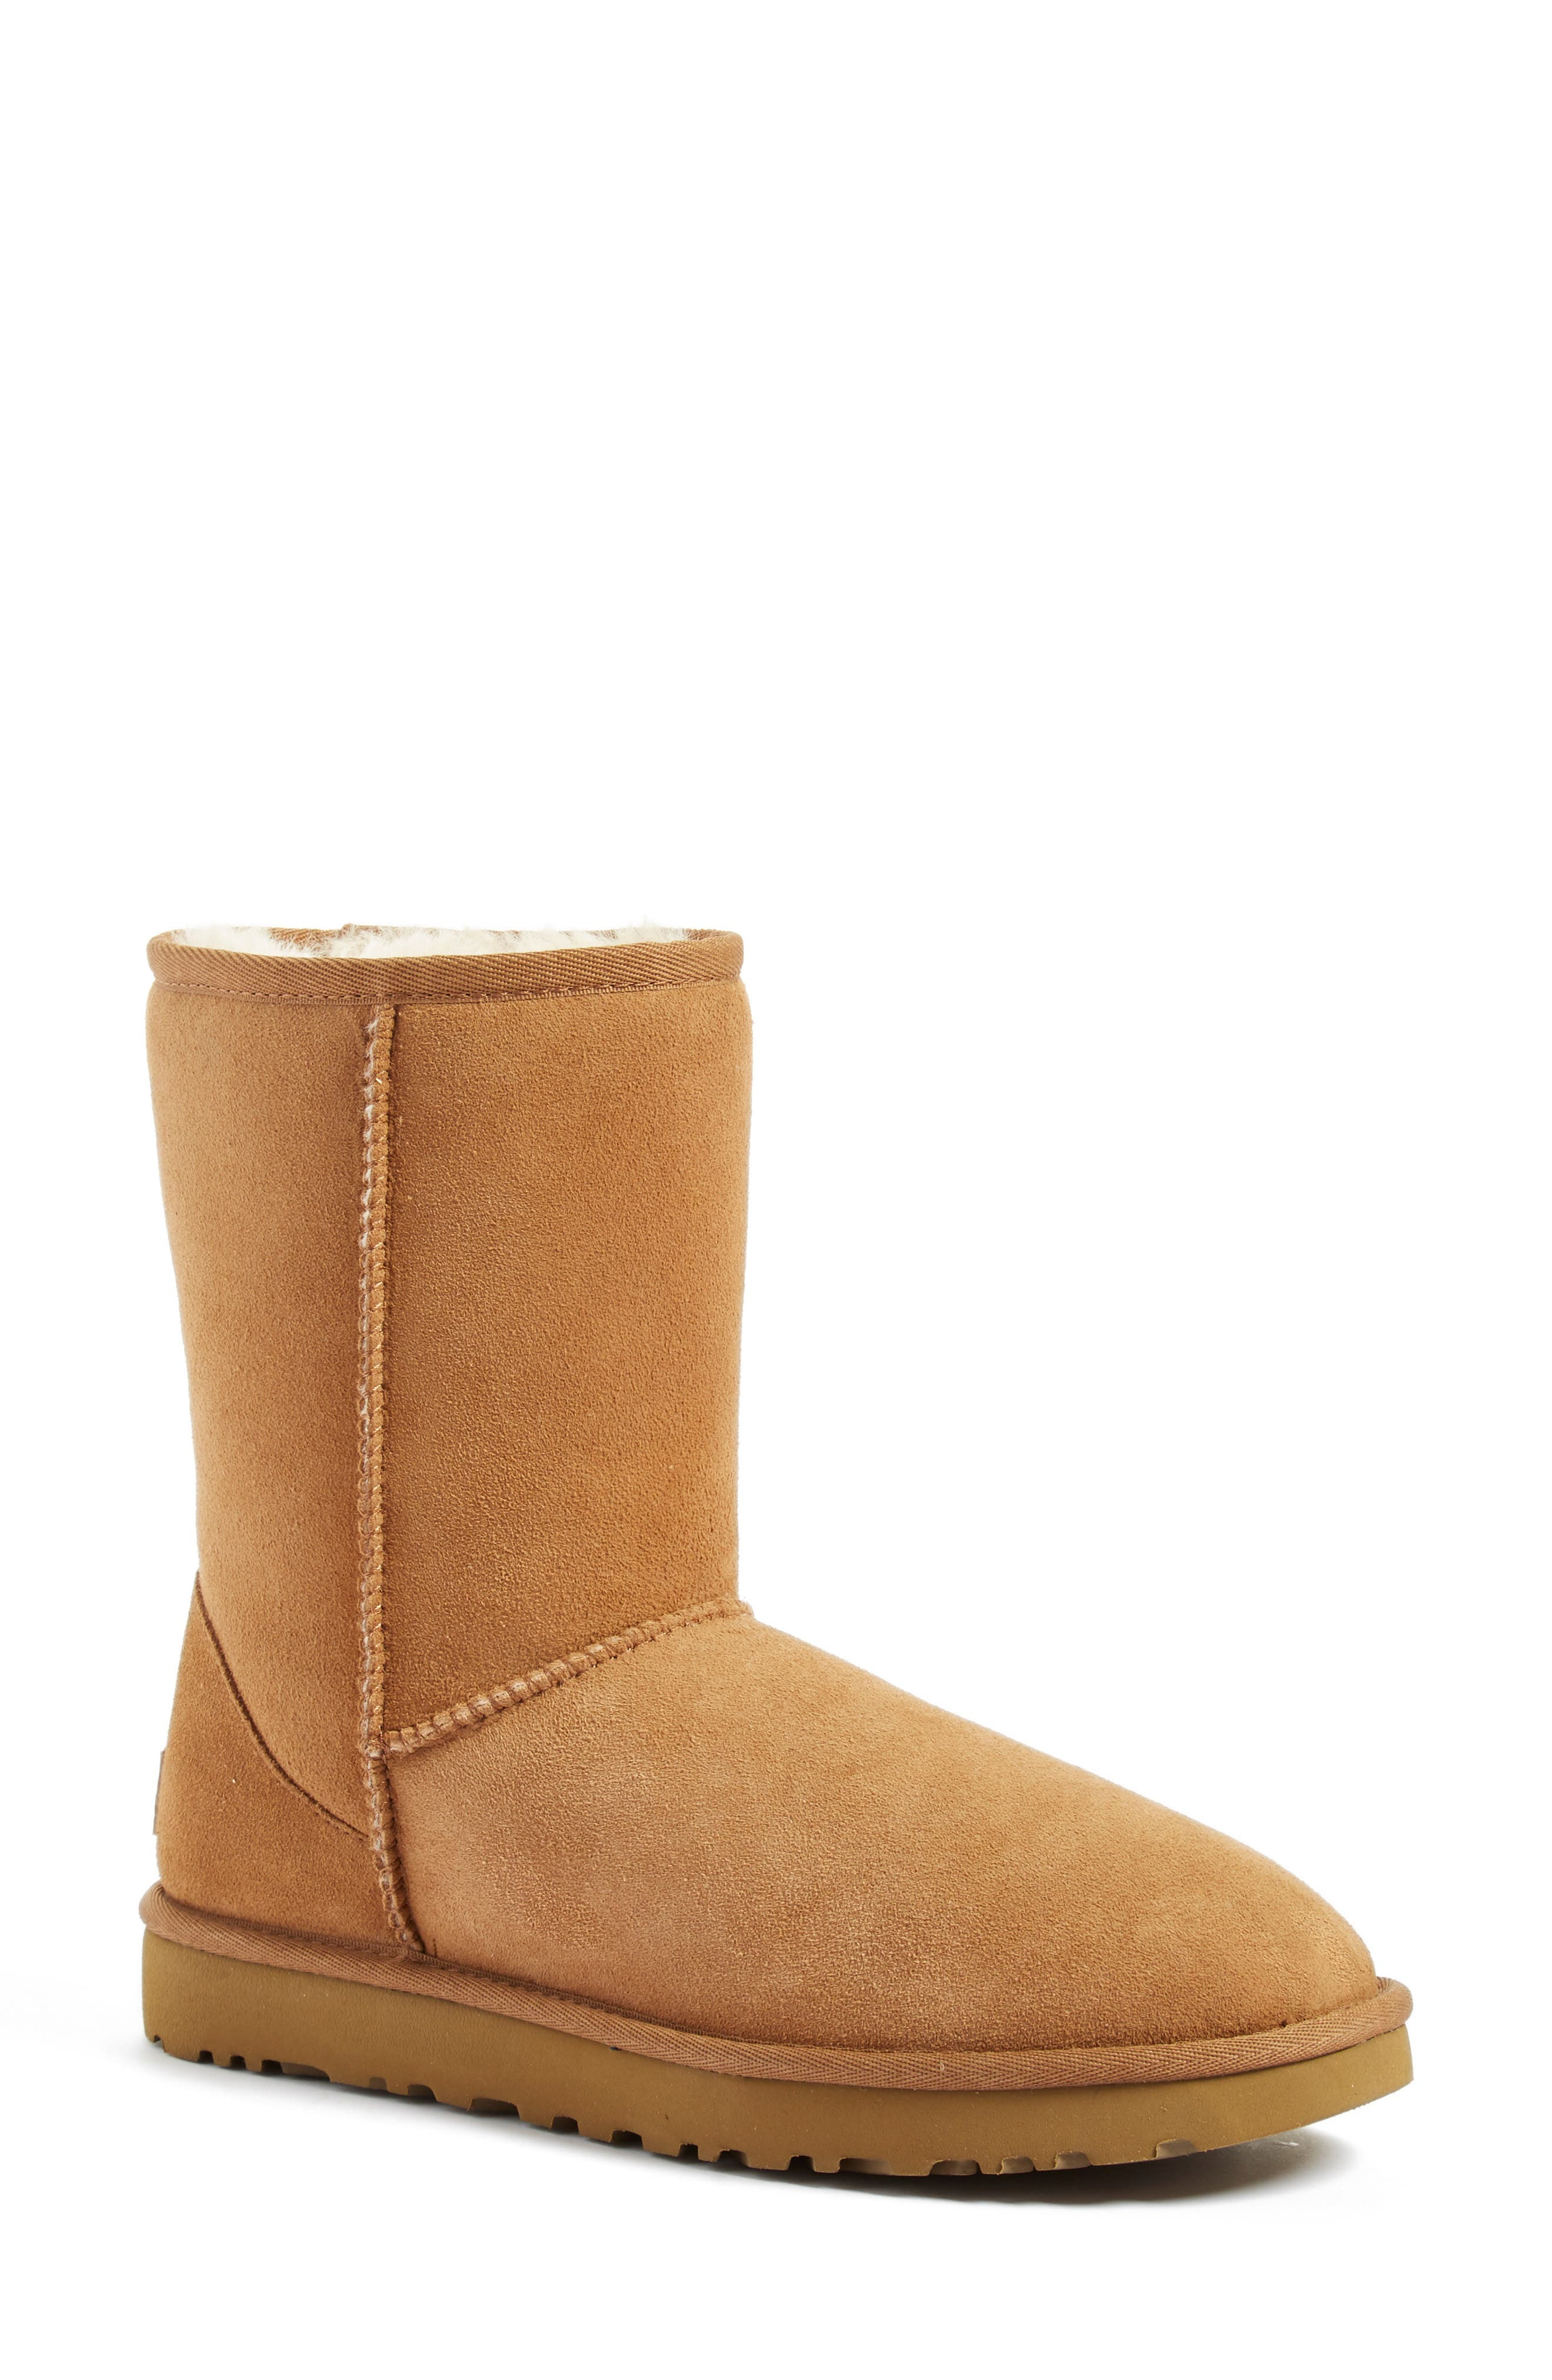 'Classic II' Genuine Shearling Lined Short Boot,                         Main,                         color, CHESTNUT SUEDE